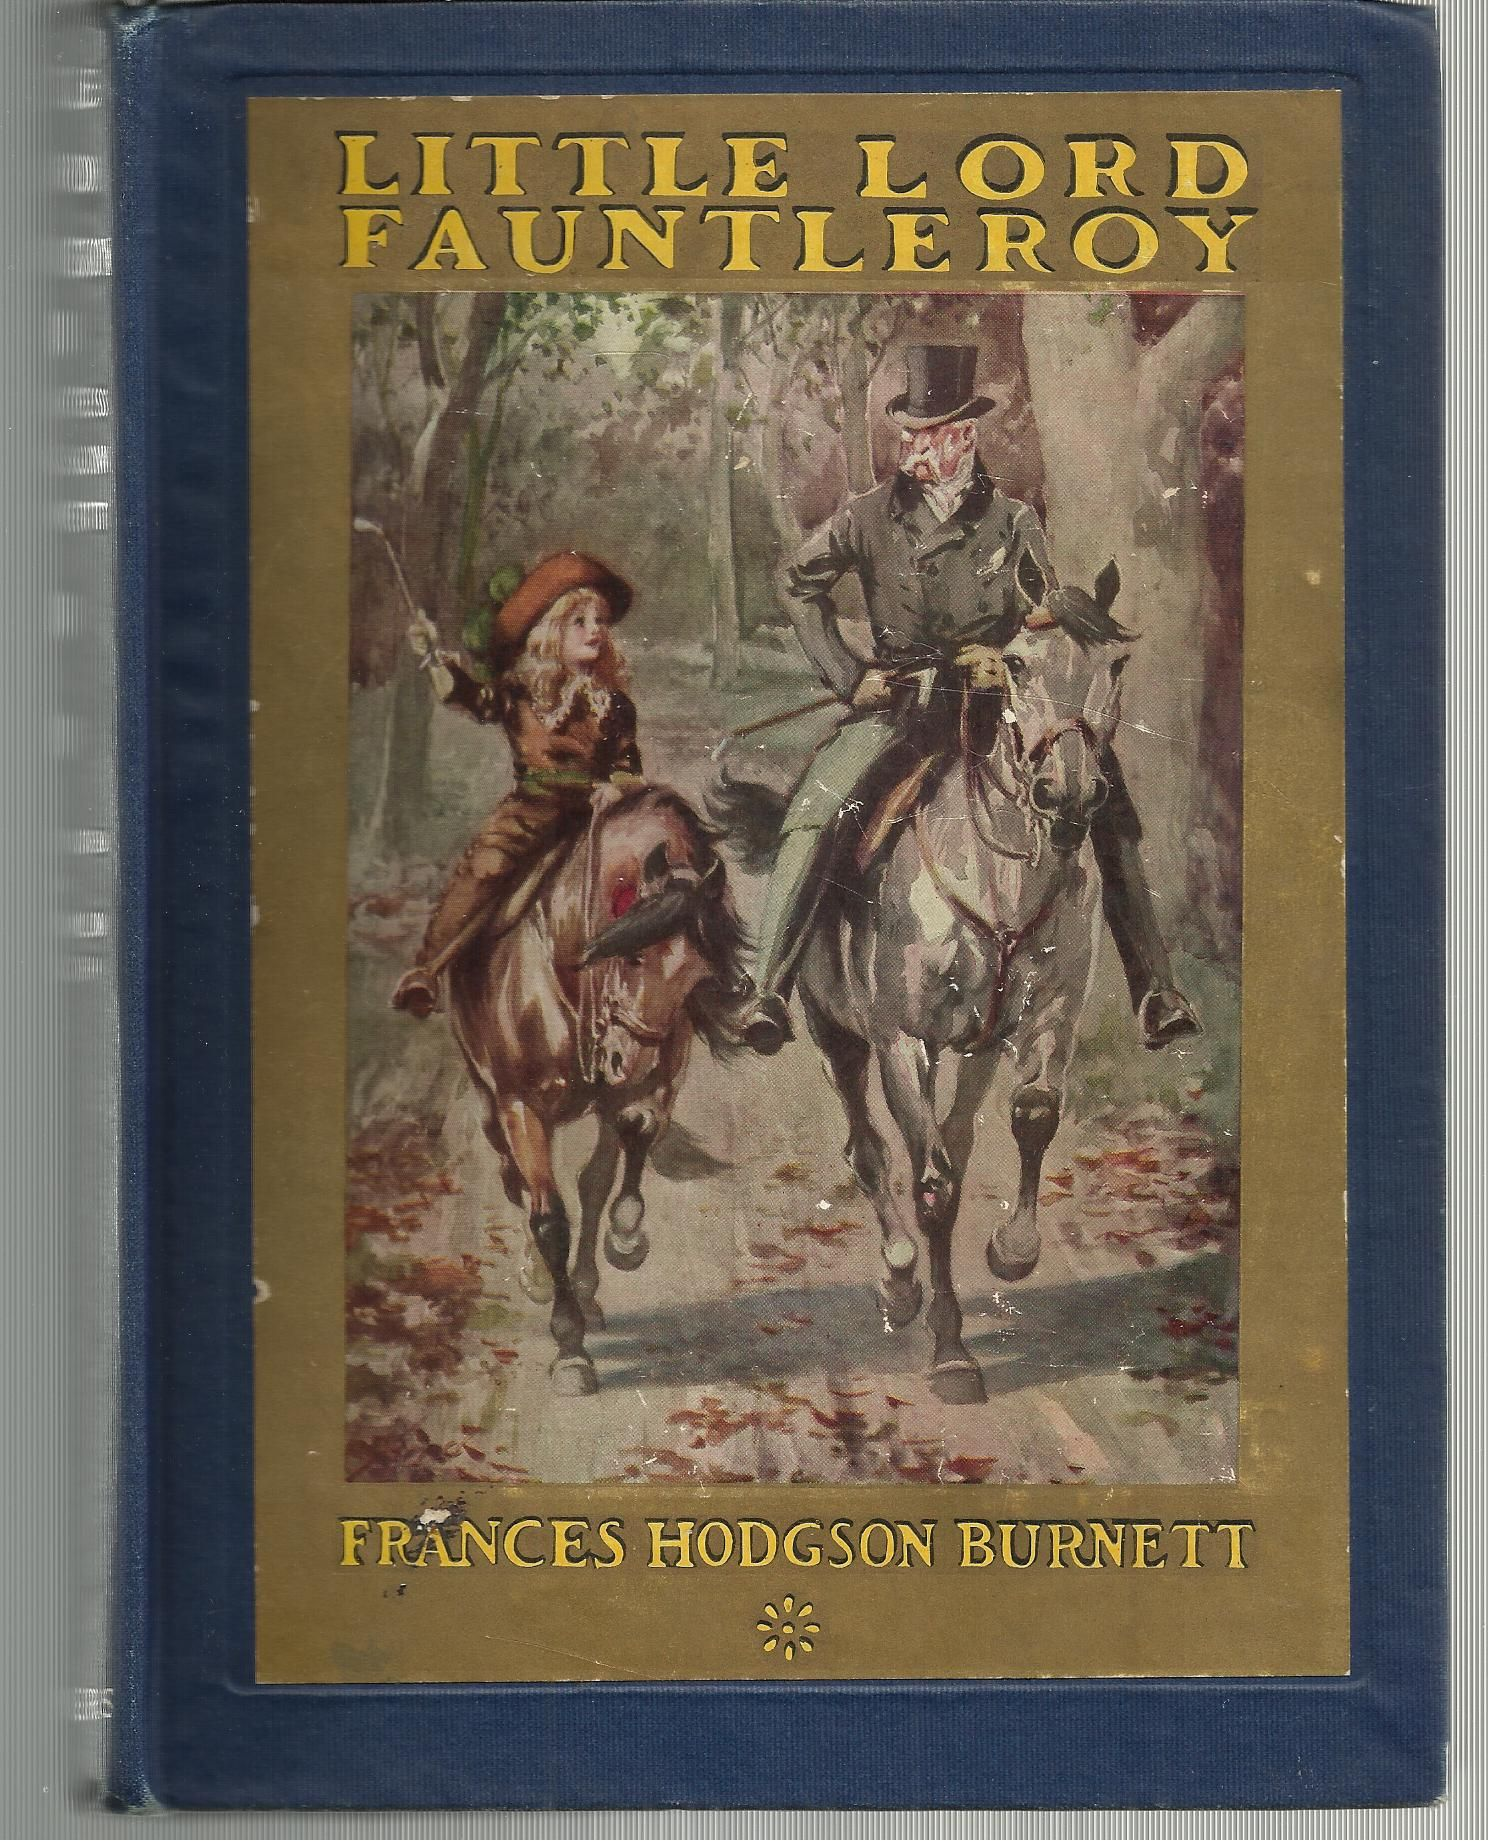 Little Lord Fauntleroy By Frances Hodgson Burnett Hardcover Later Printing 1916 From Scraps Of American History Sku 00194